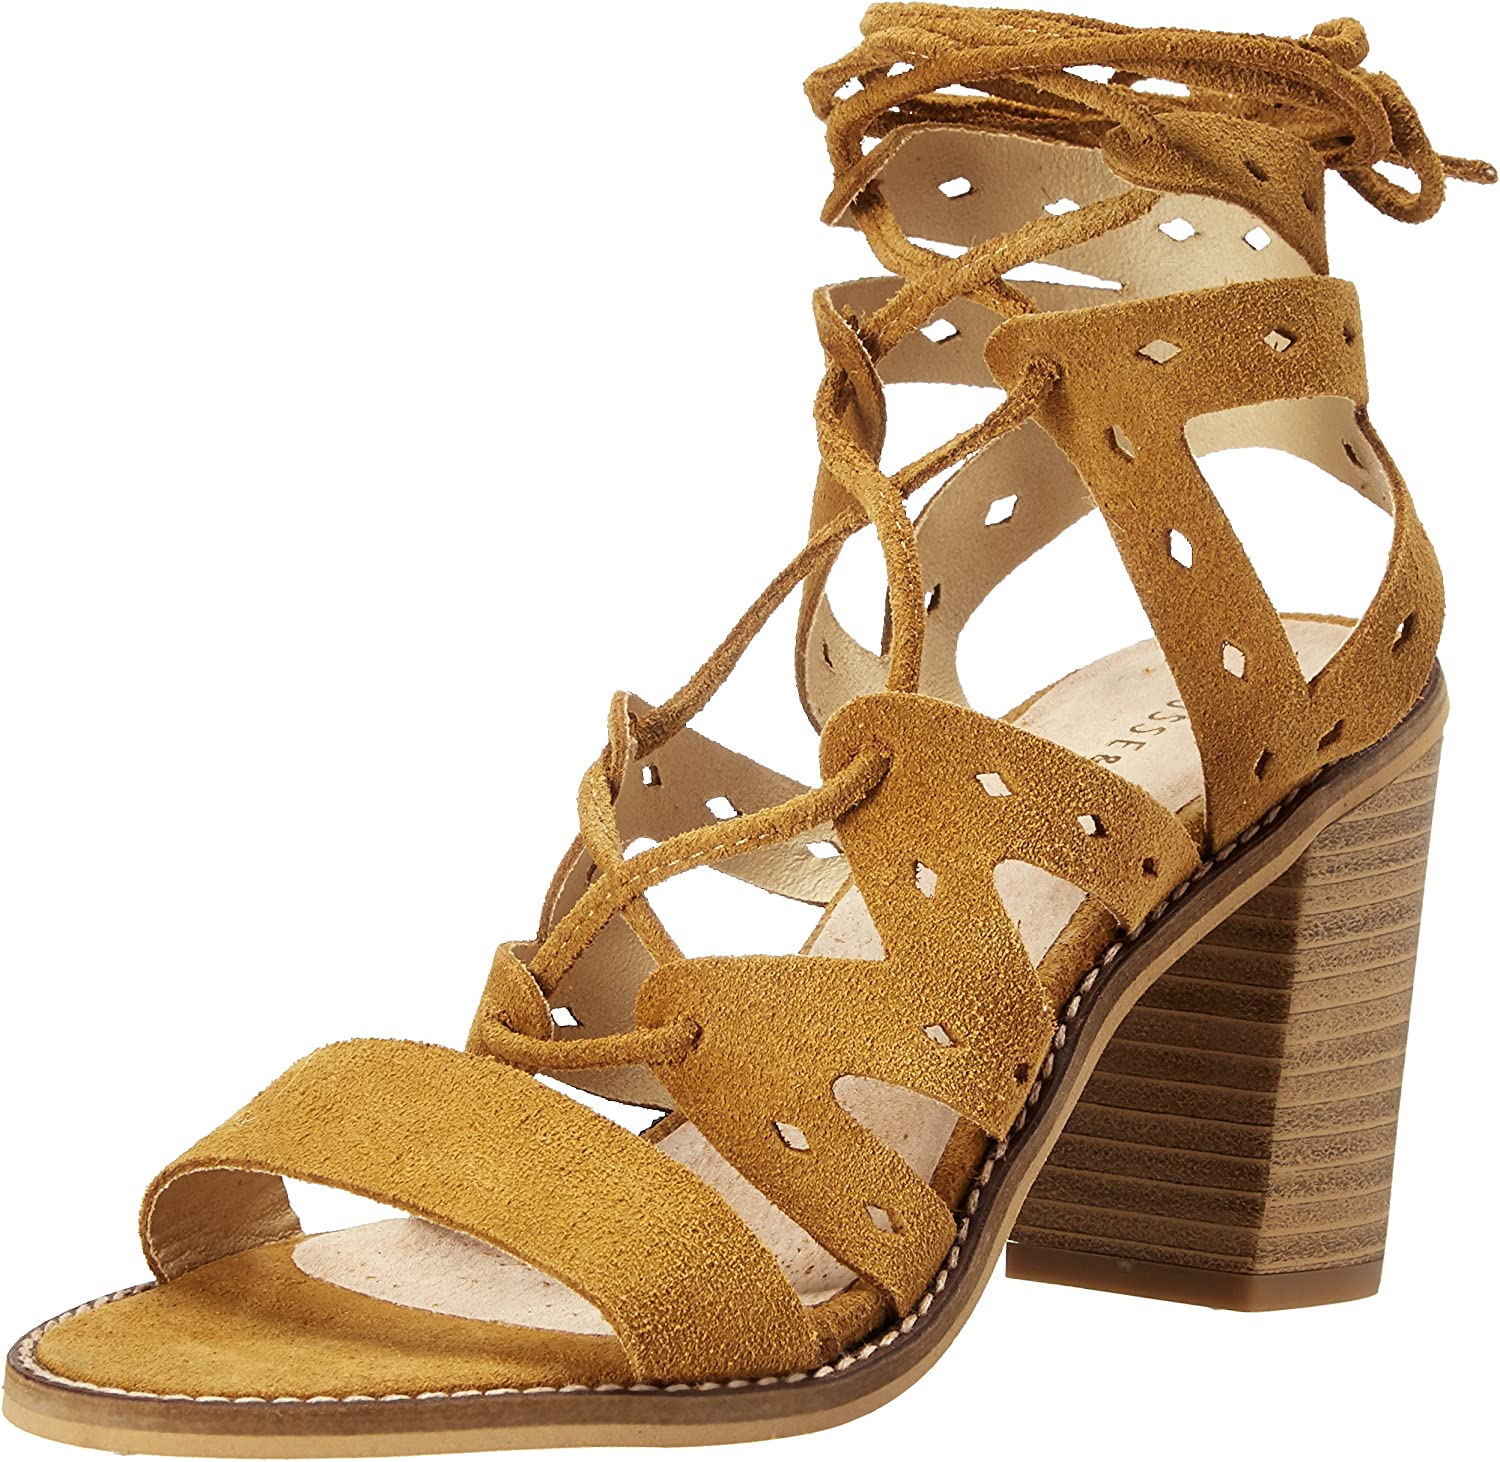 Musse & Cloud Womens Jadanci Dress Sandal